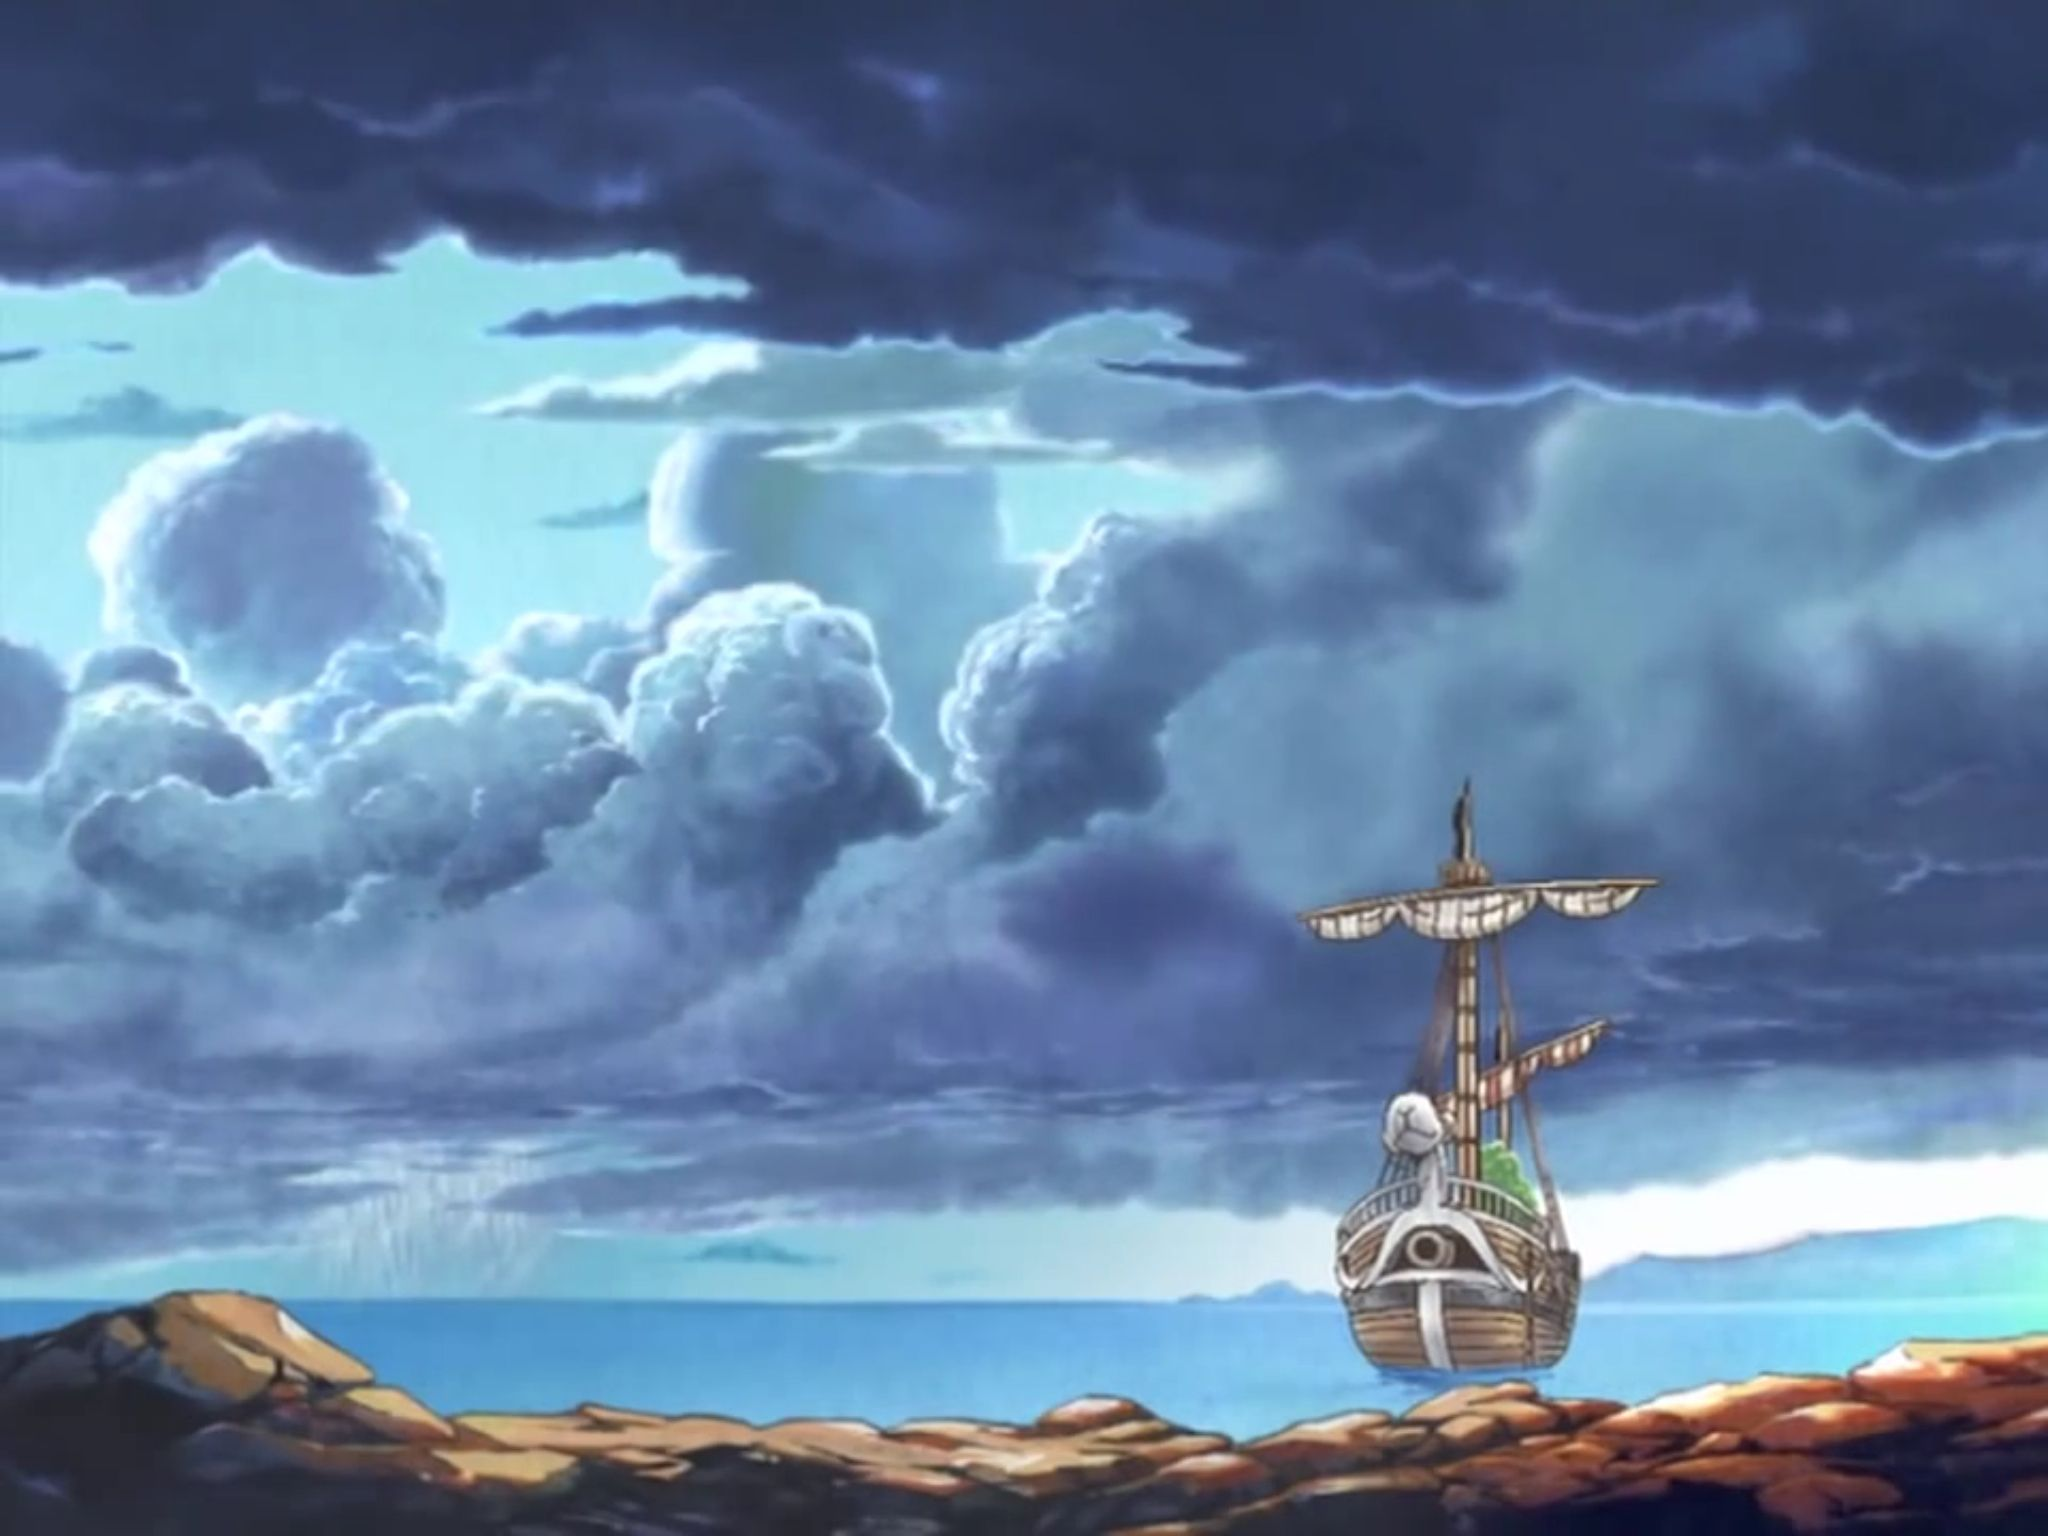 One Piece, Going Merry   One piece, Anime shows, Manga